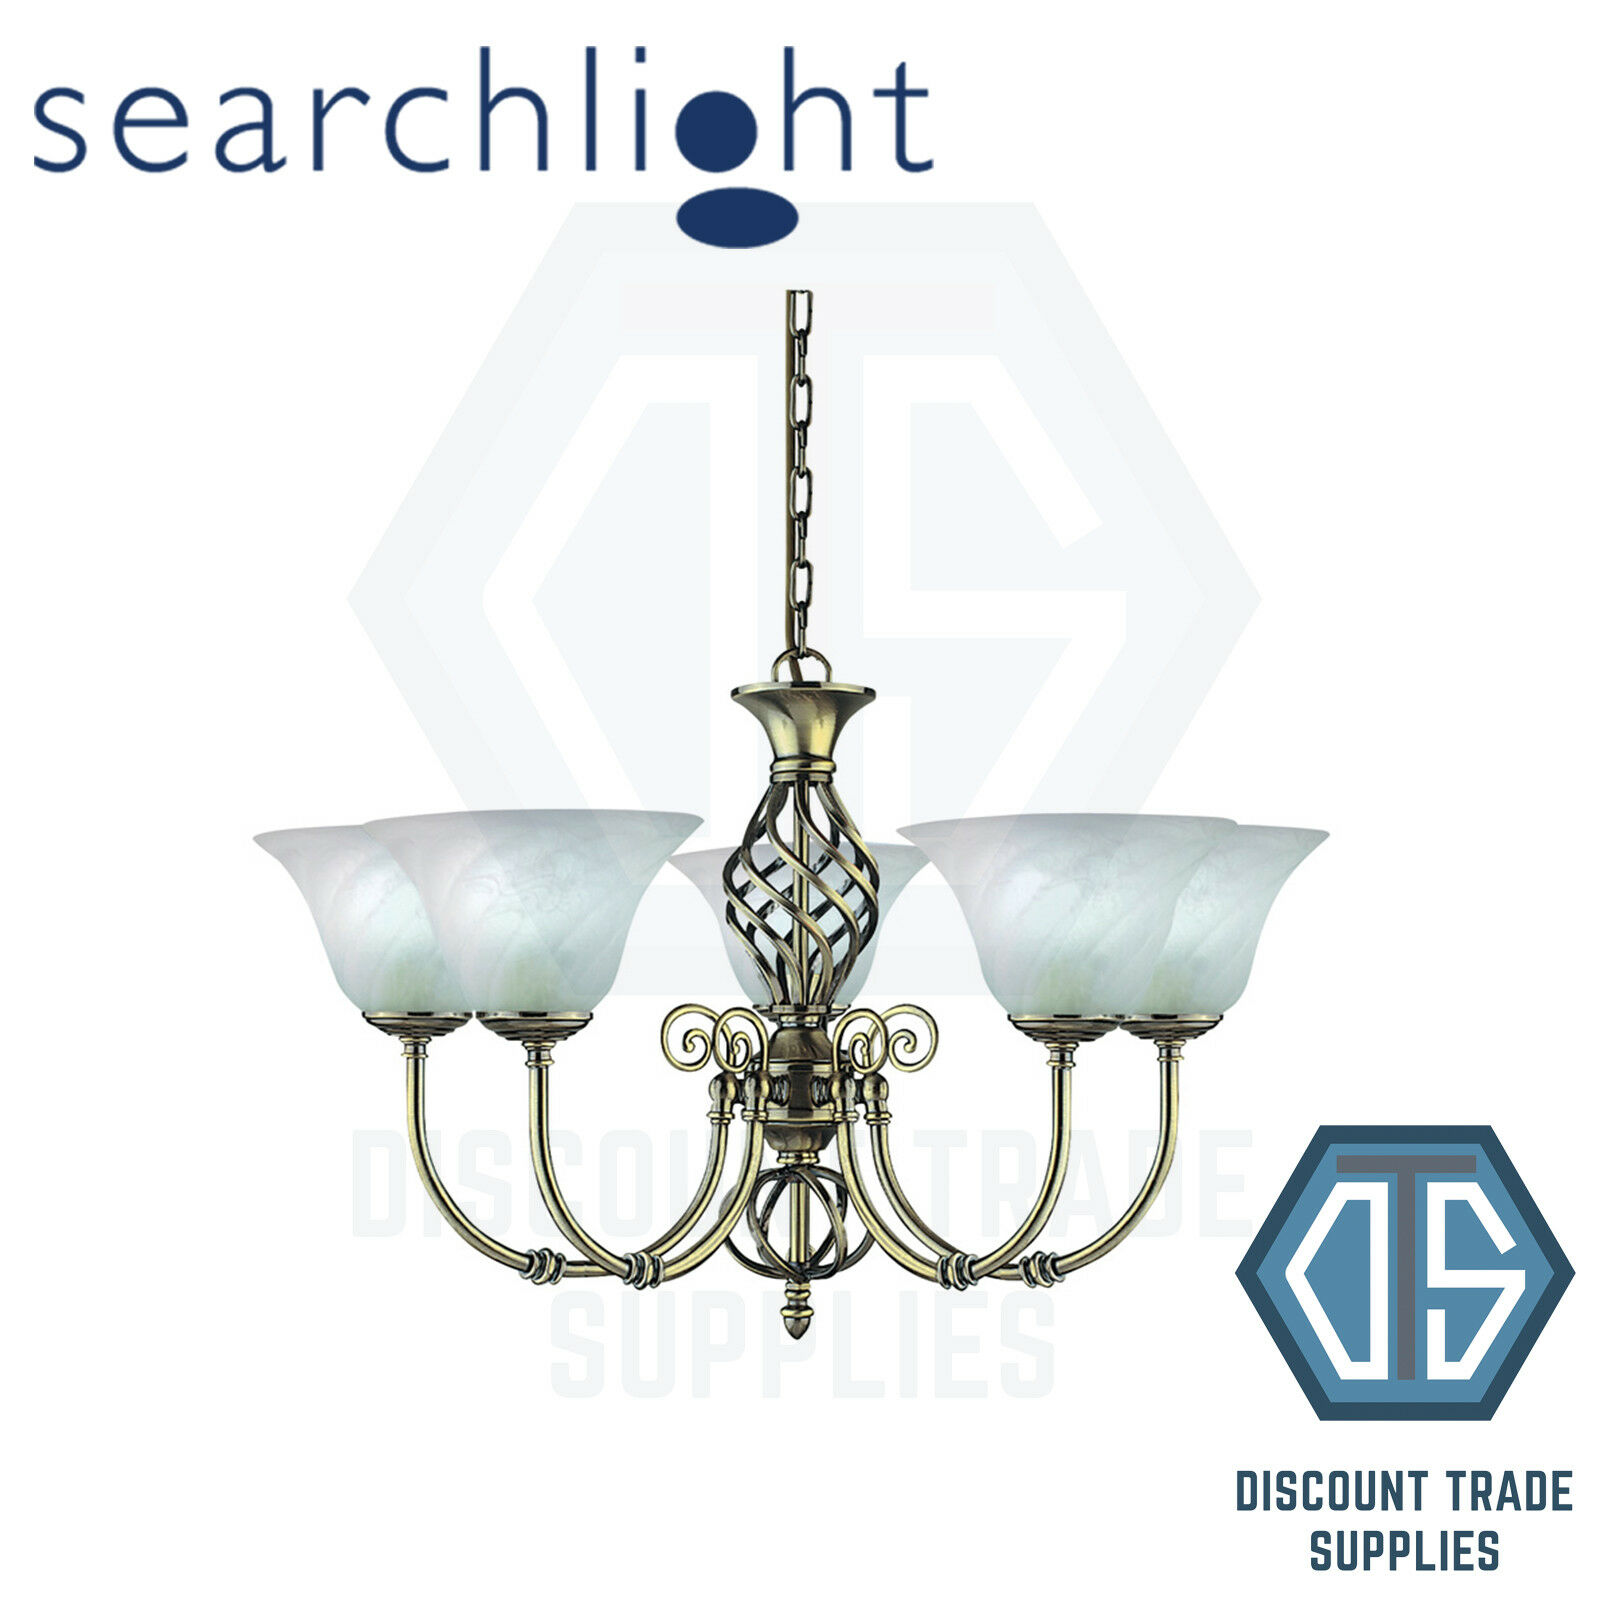 975-5 SEARCHLIGHT CAMEROON ANTIQUE BRASS 5 LIGHT FITTING, MARBLE GLASSES